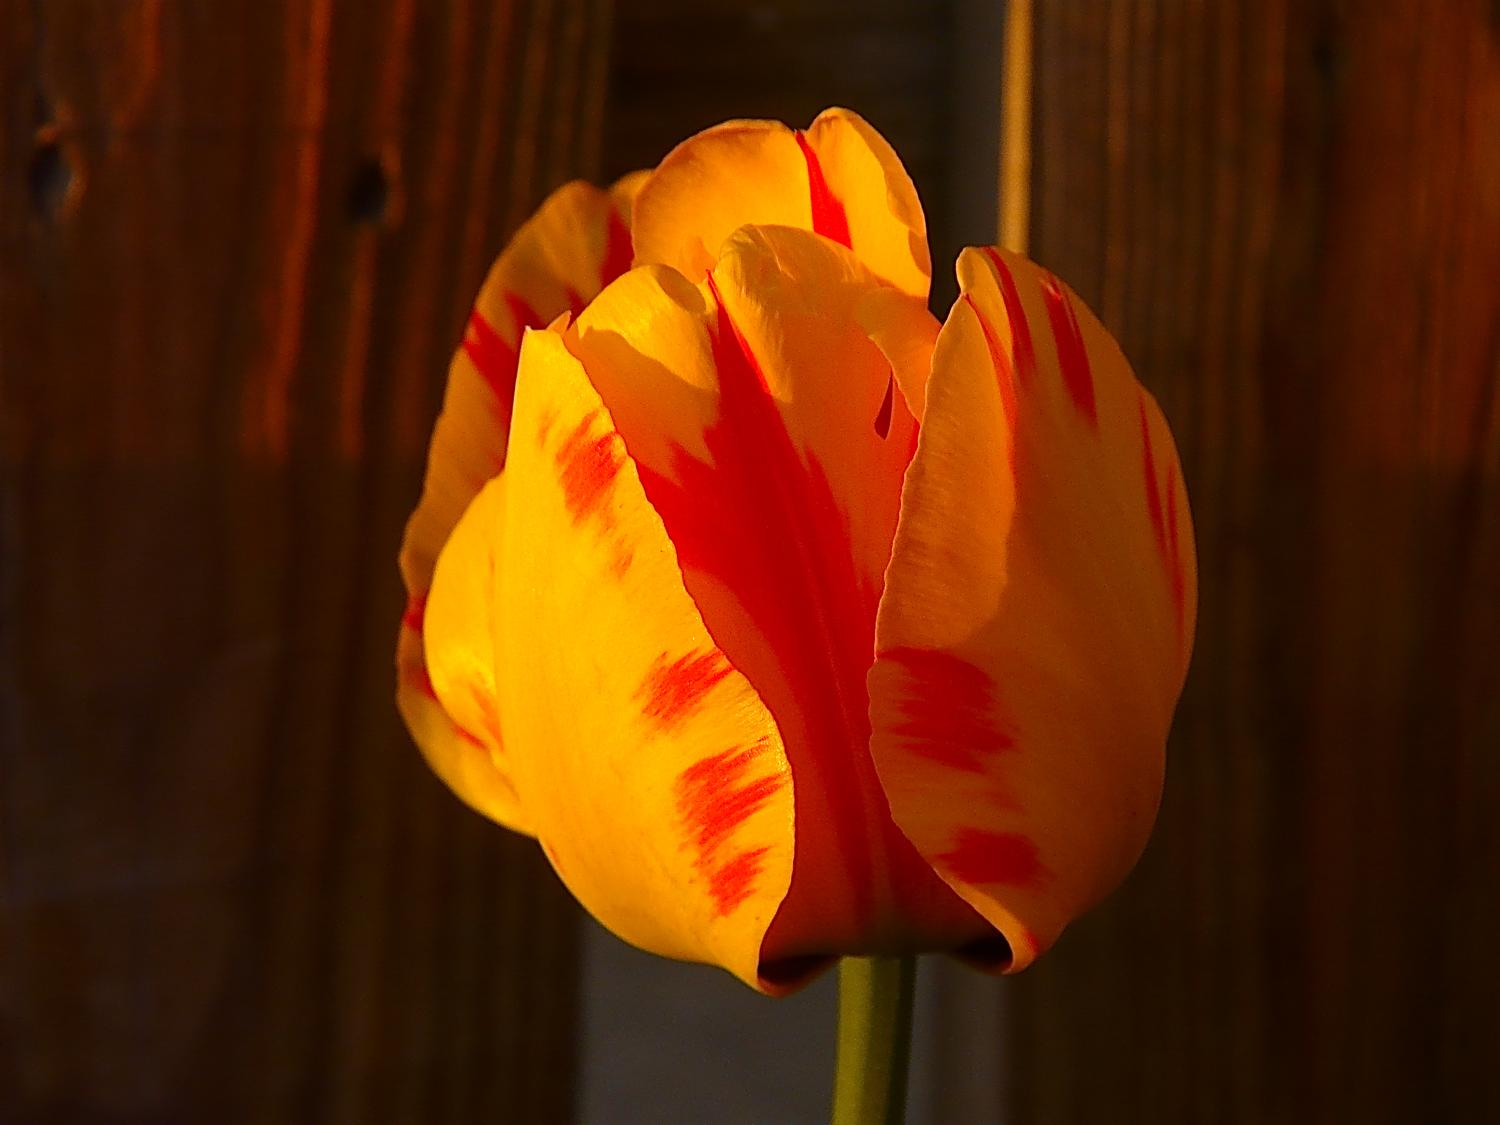 Tulip grown by The Artist's Muse - #1 - Tulip #14 - - art  - photography - by Tony Karp